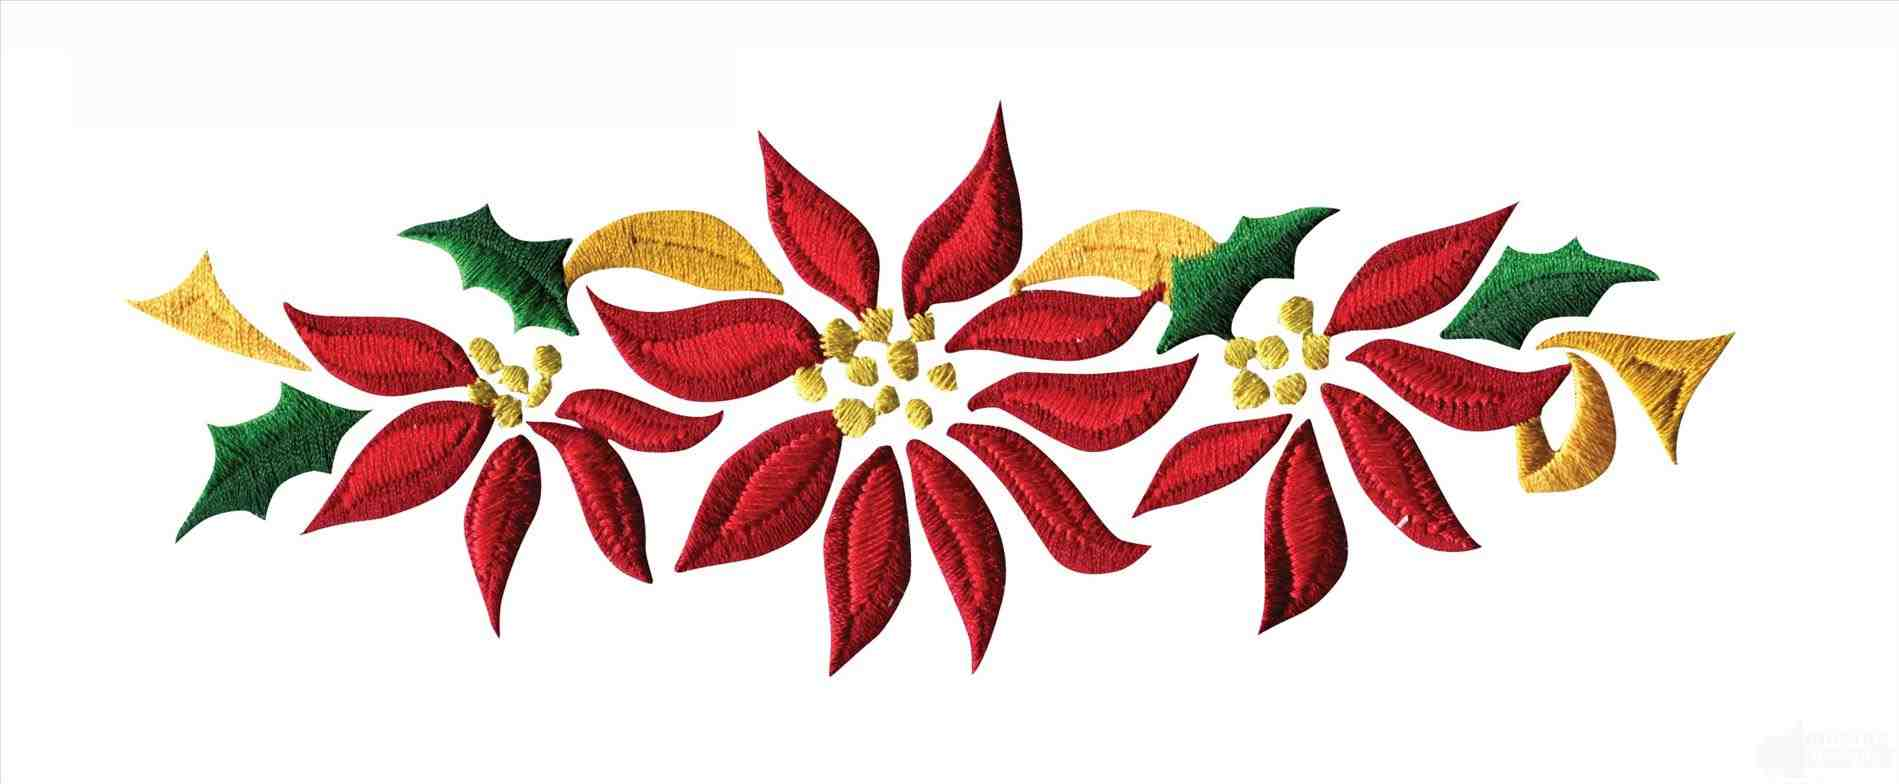 Christmas poinsettia pictures free. Poinsettias clipart banner